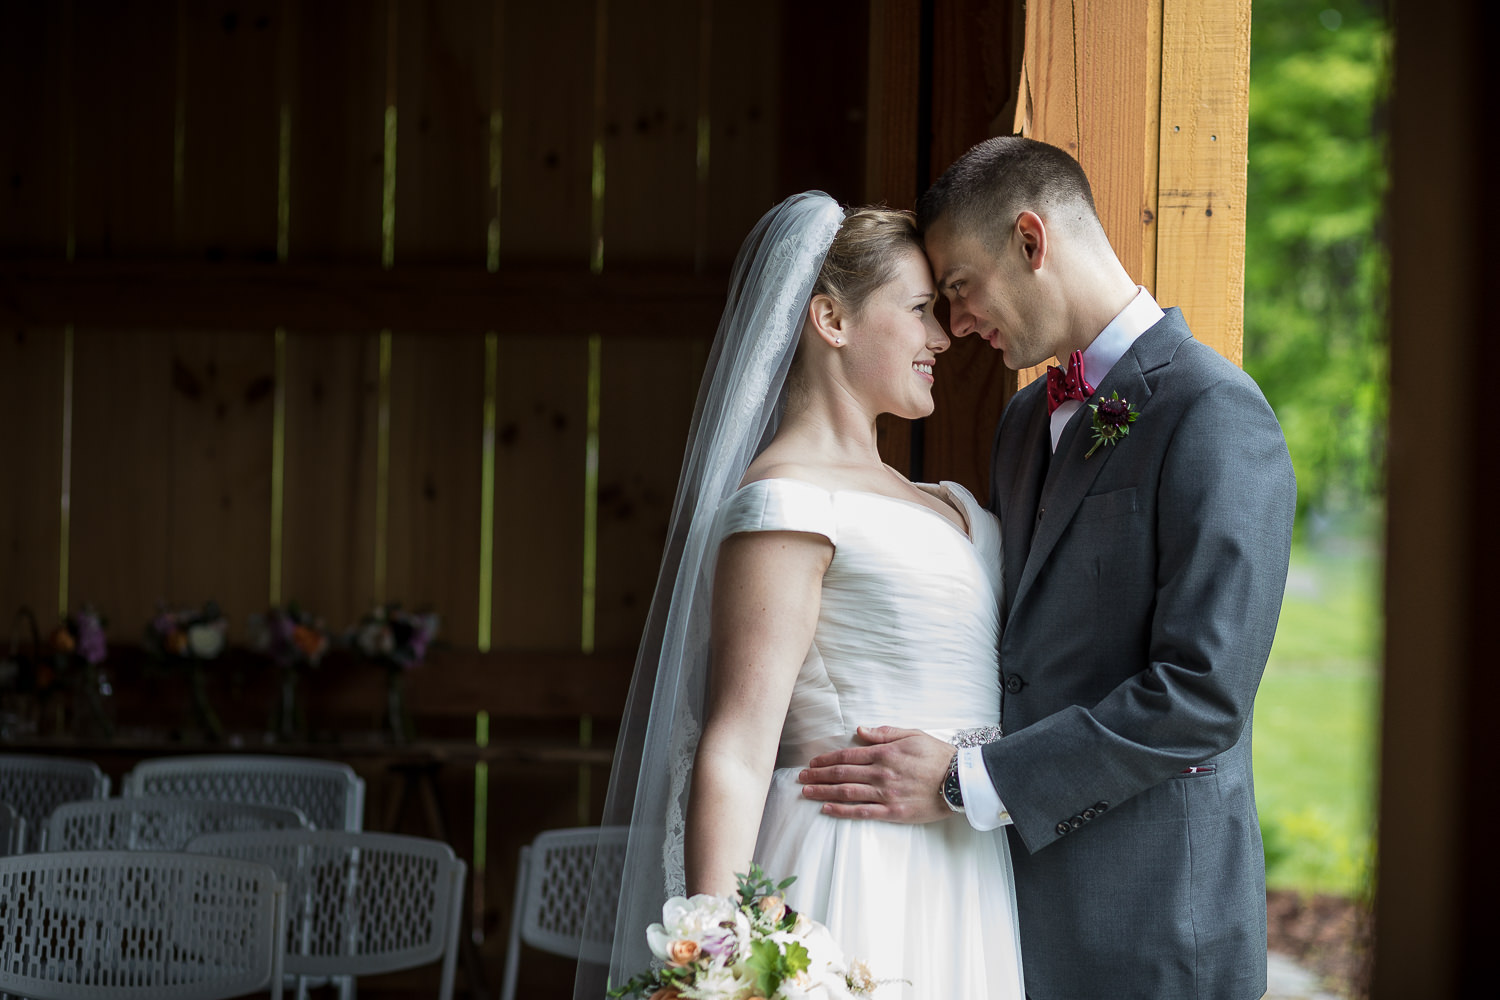 a couple's quiet moment during their wedding day first look in a photo by wedding photographer Stina Booth of Vermont